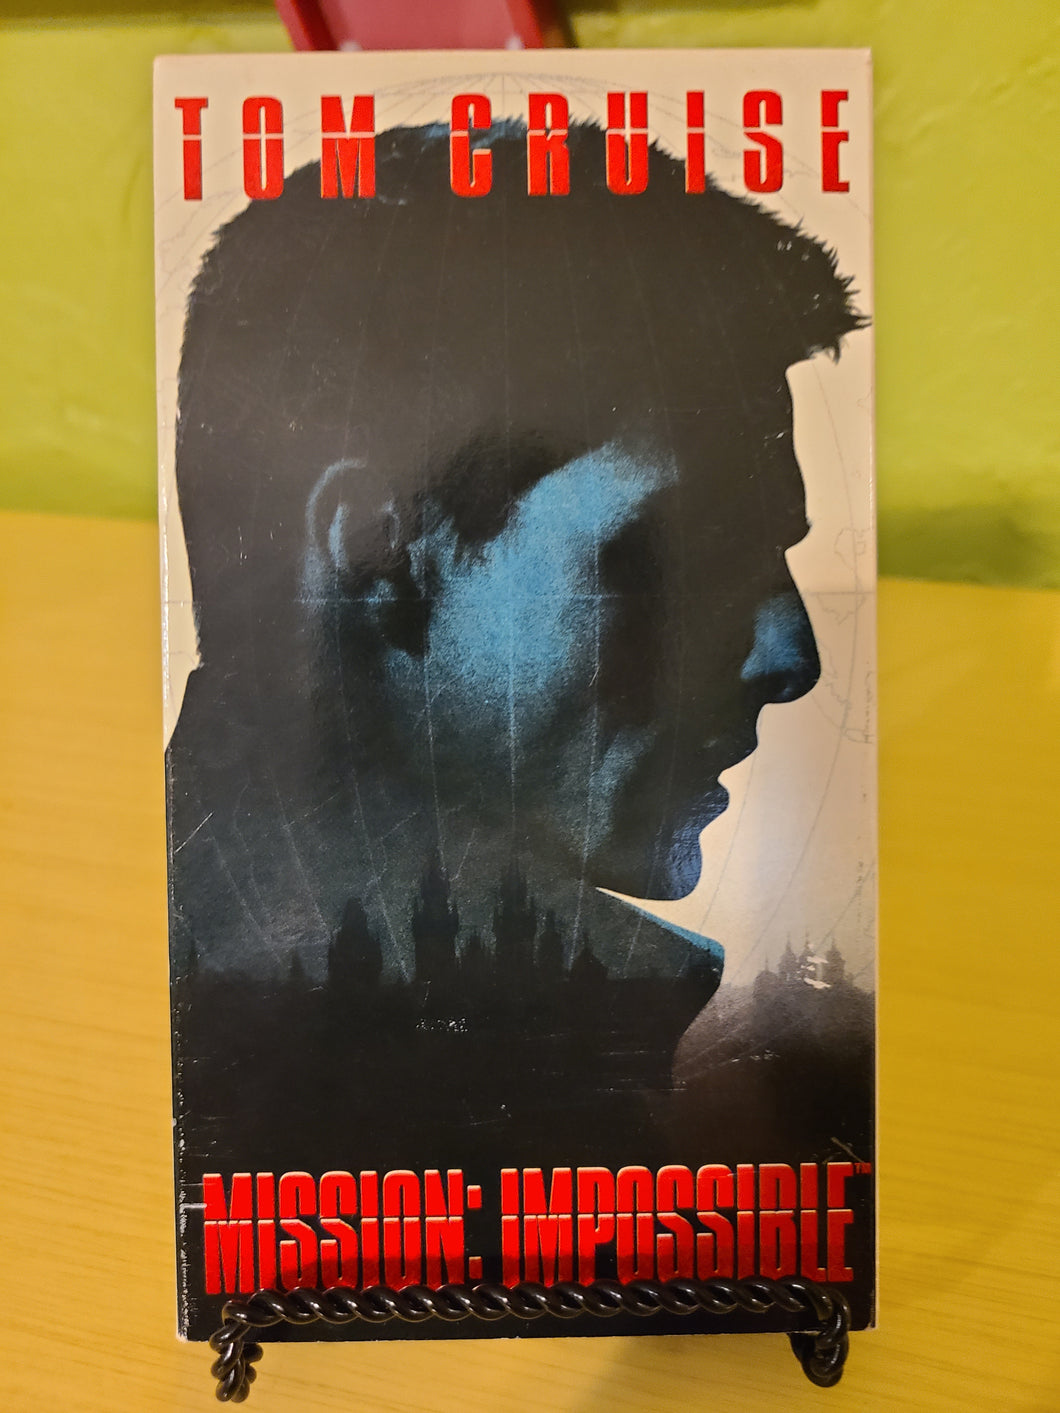 Mission: Impossible VHS